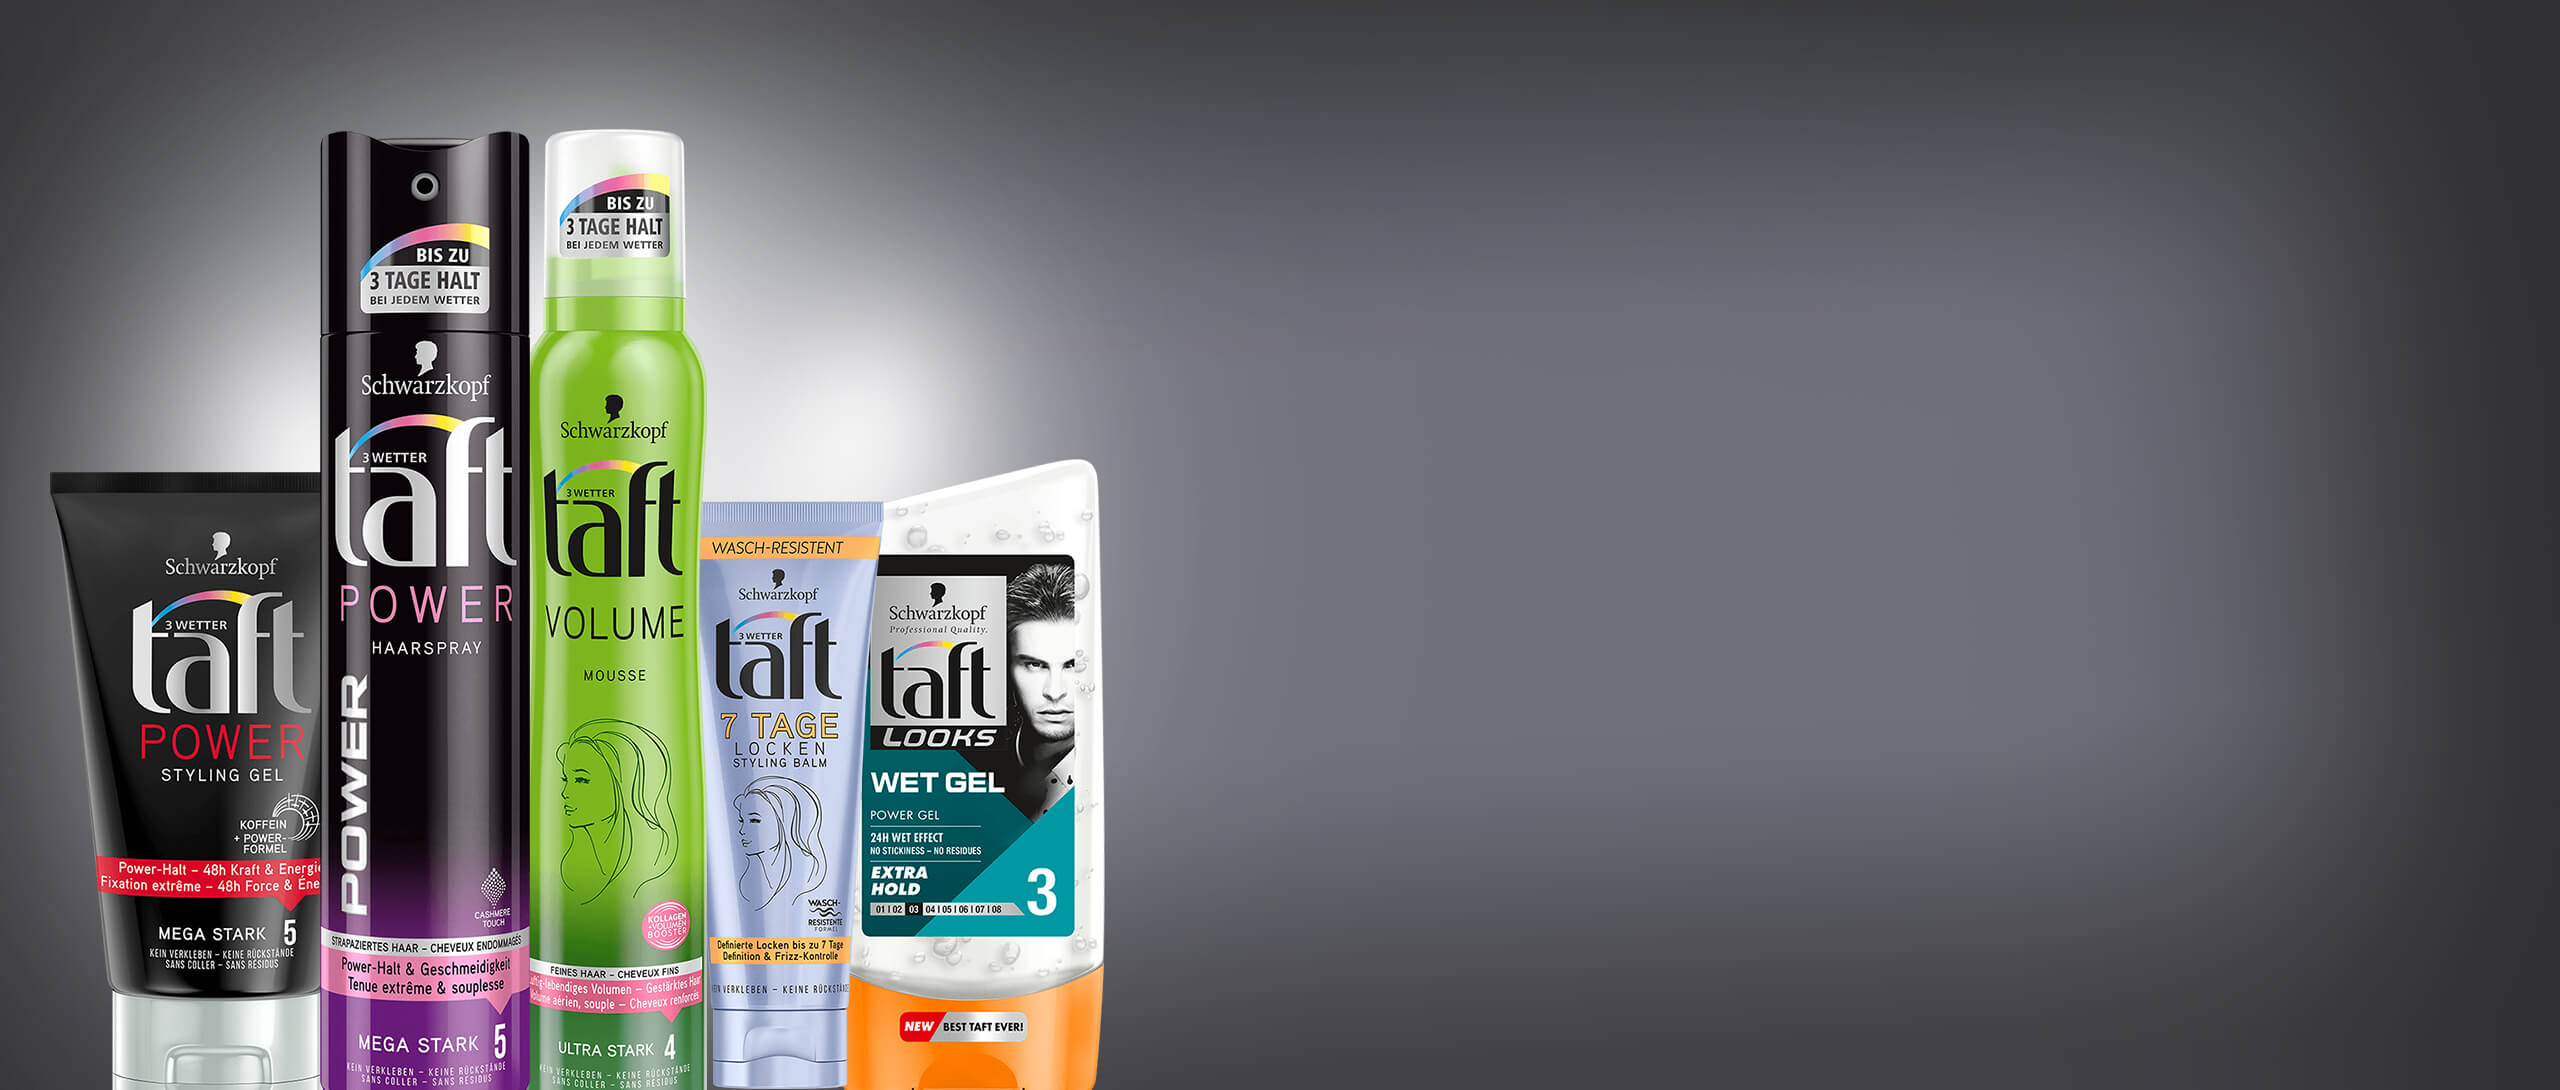 taft_ch_promotion_product_range_2560x1090